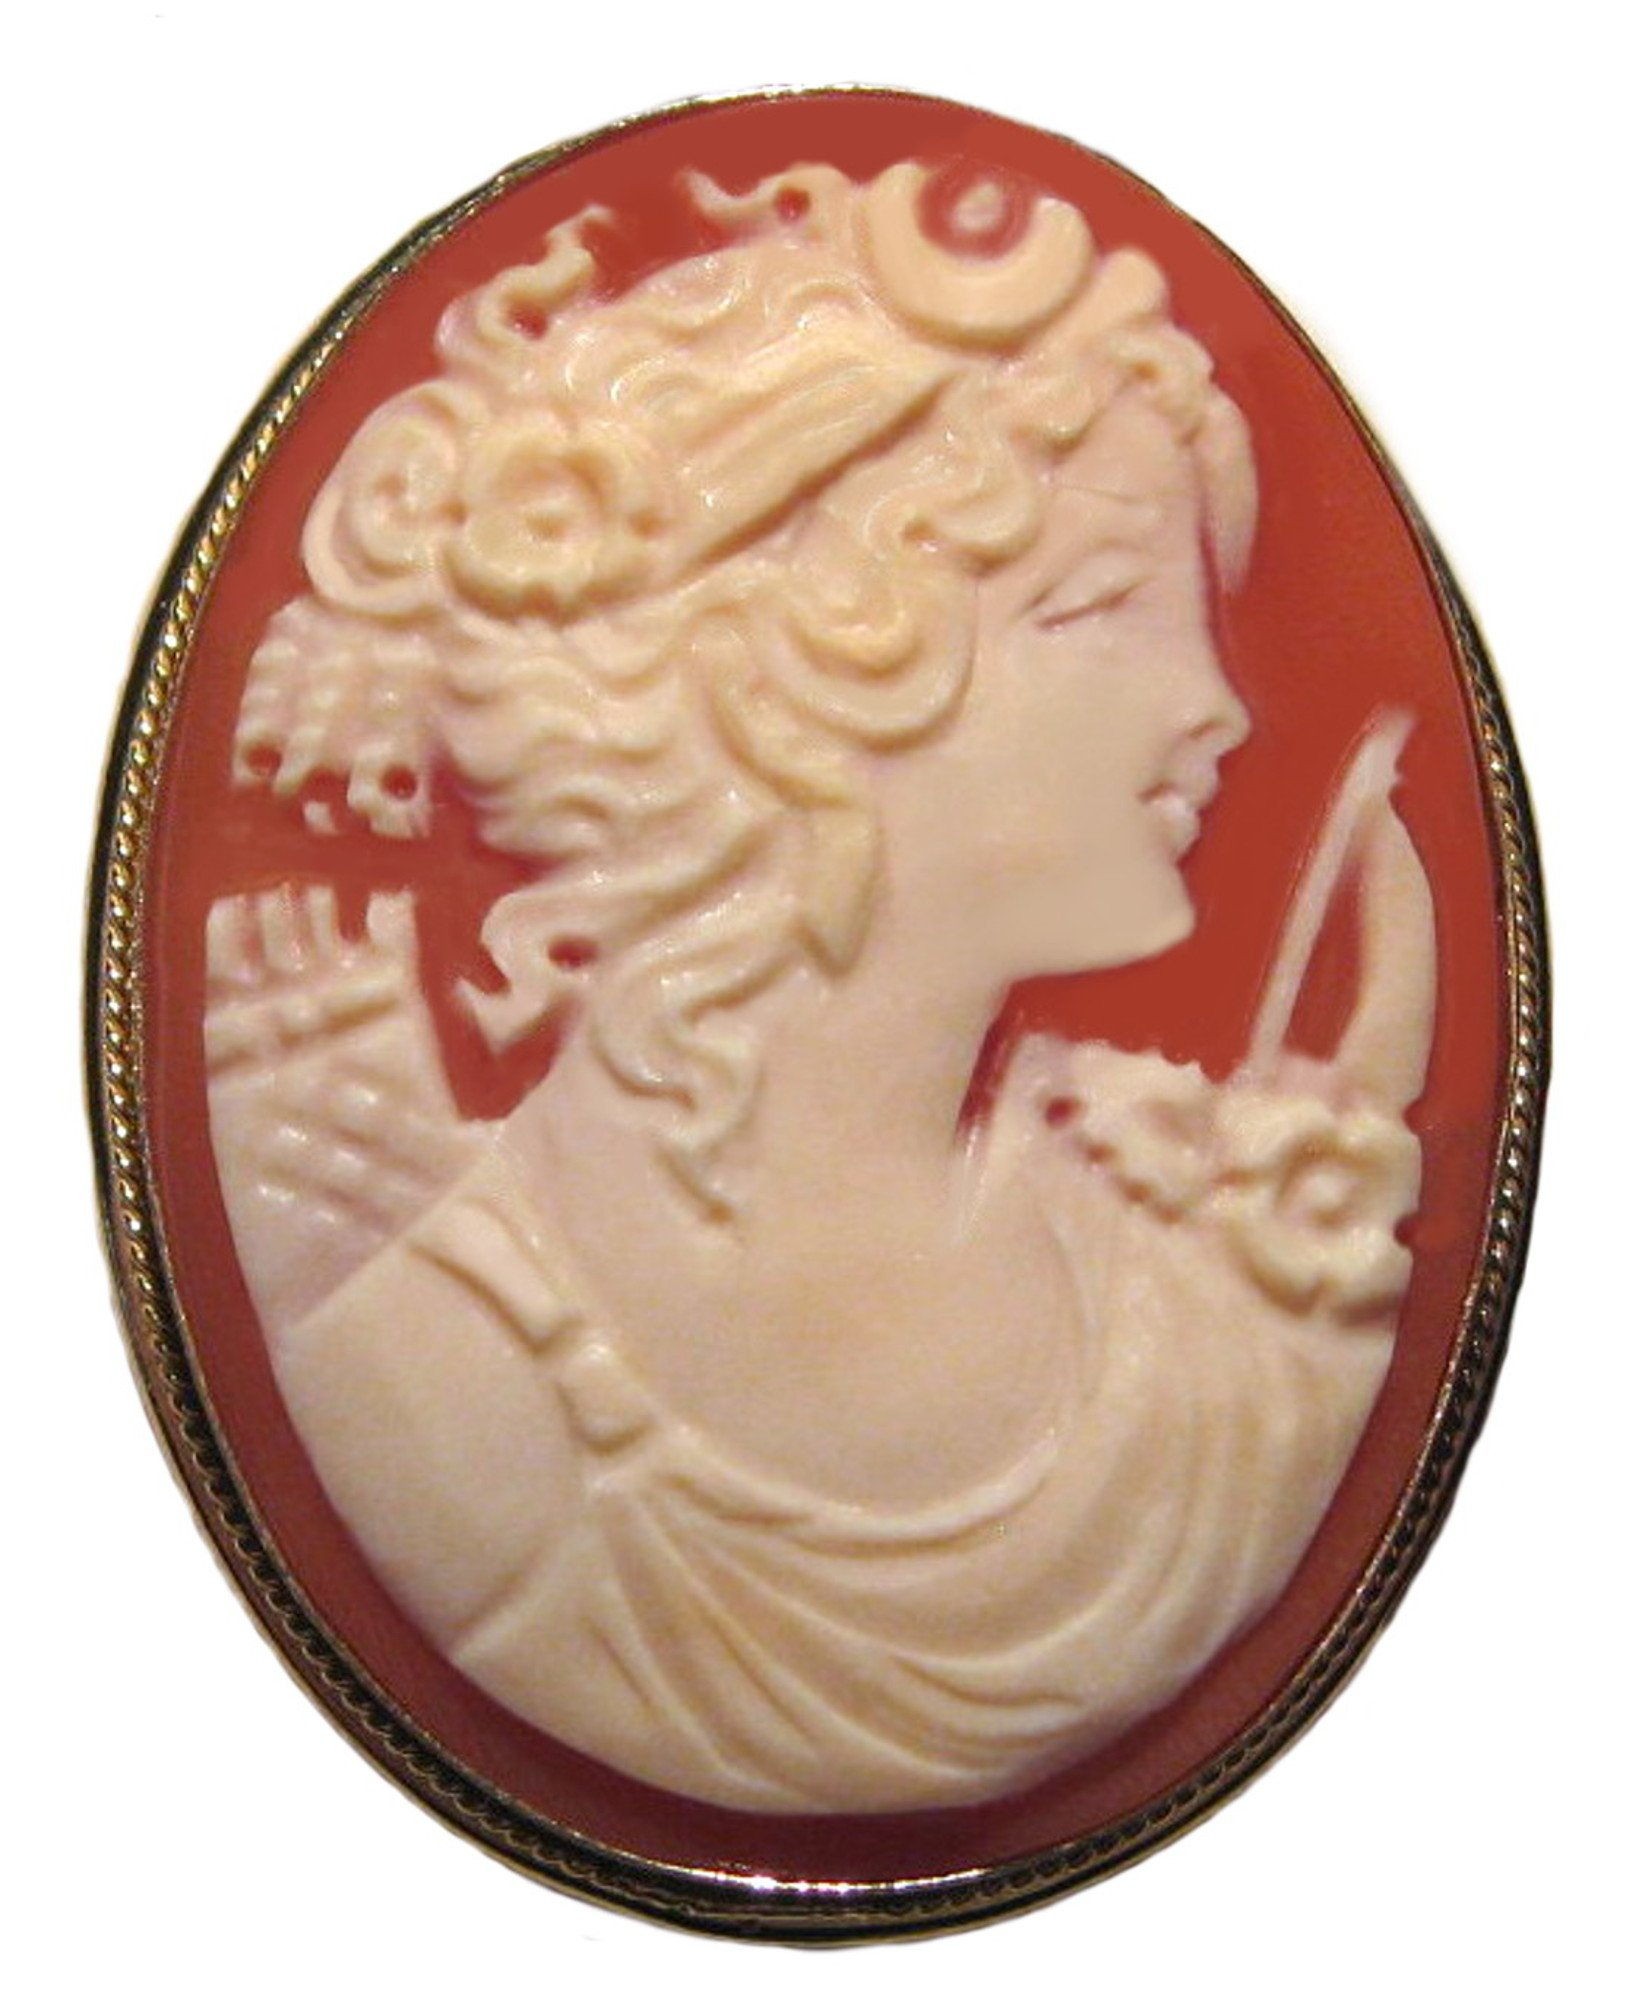 Goddess Diana Cameo Broach Pendant Master Carved, Shell Sterling Silver 18k Gold Overlay Italian by cameosRus (Image #1)